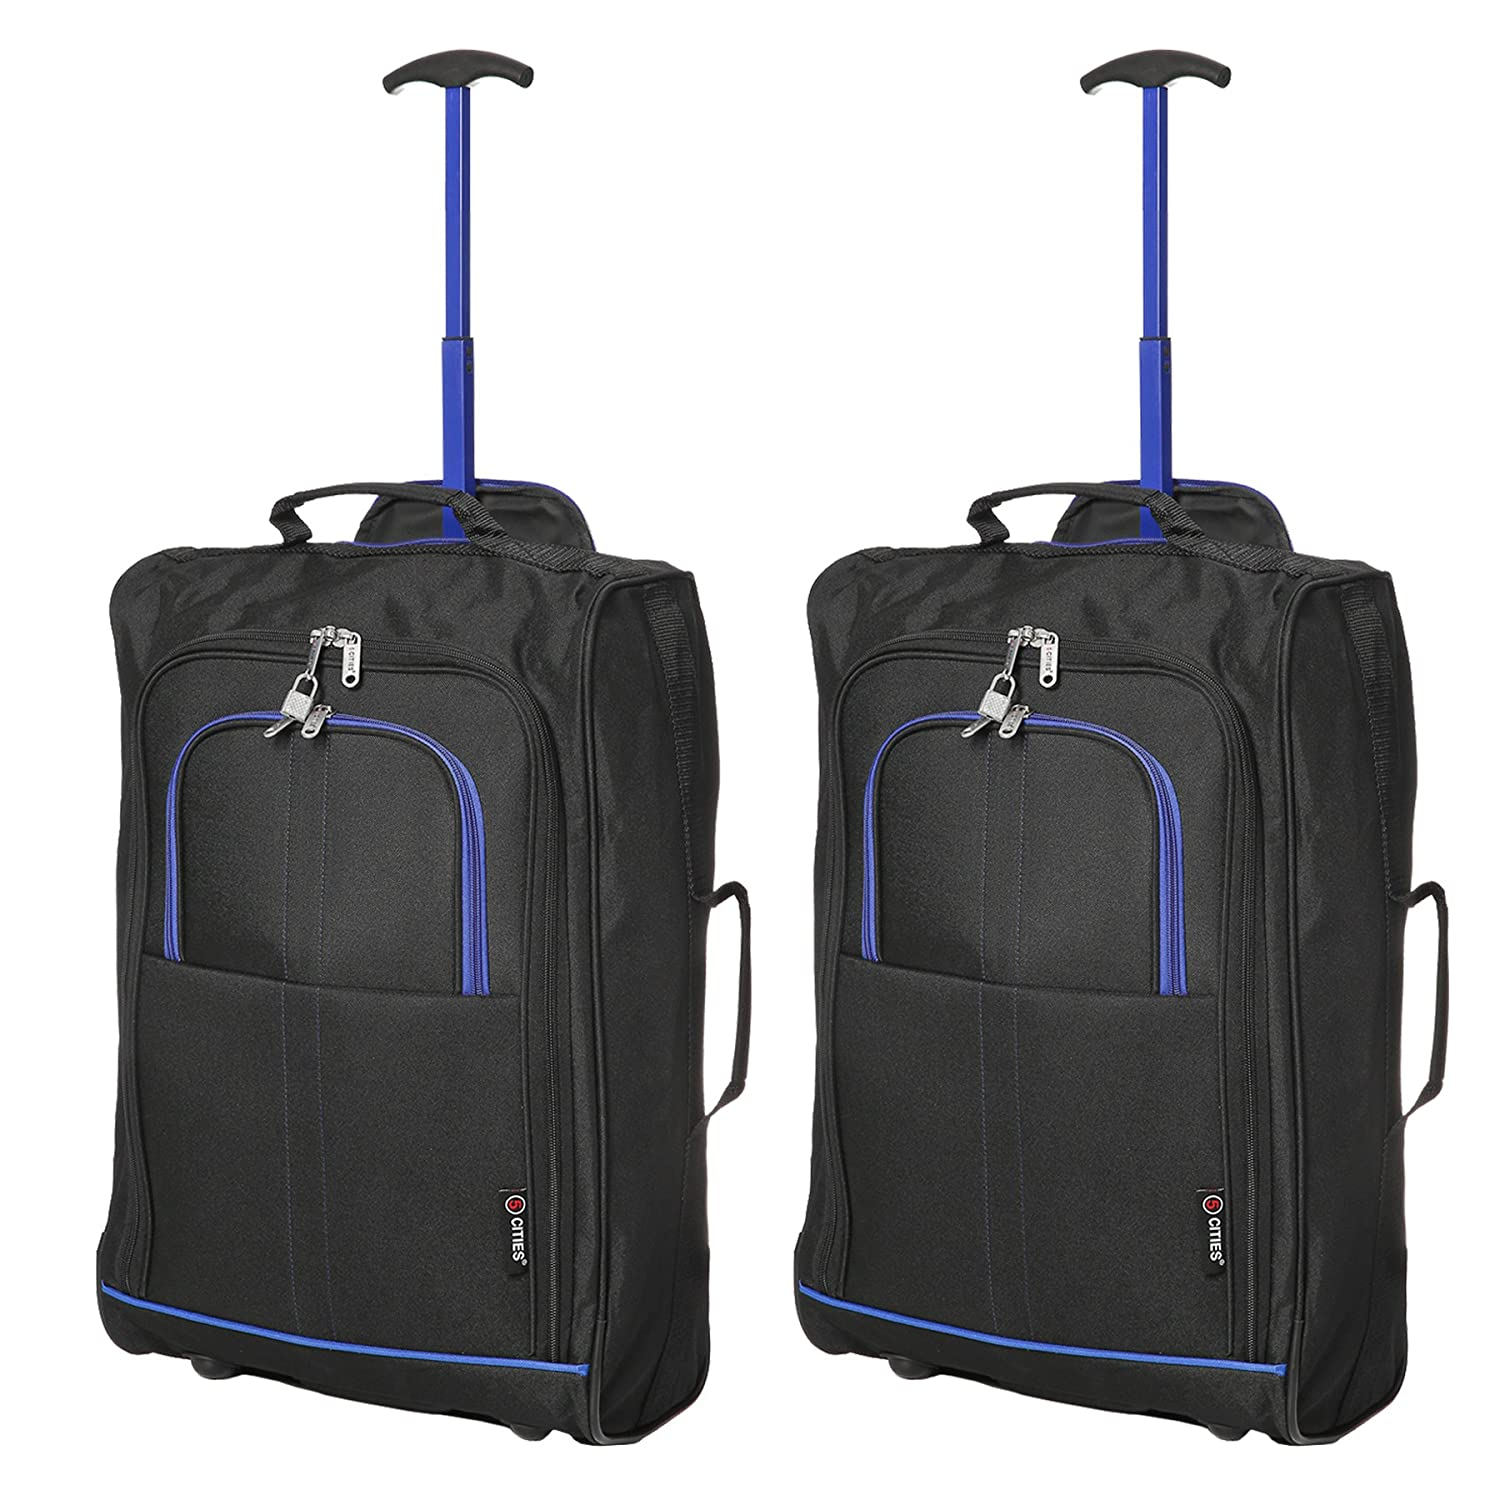 88658d1c3 Set of 2 Super Lightweight Cabin Approved Luggage Travel Wheely Suitcase  Wheeled Bags Bag (2 x Black/Blue): Amazon.co.uk: Luggage